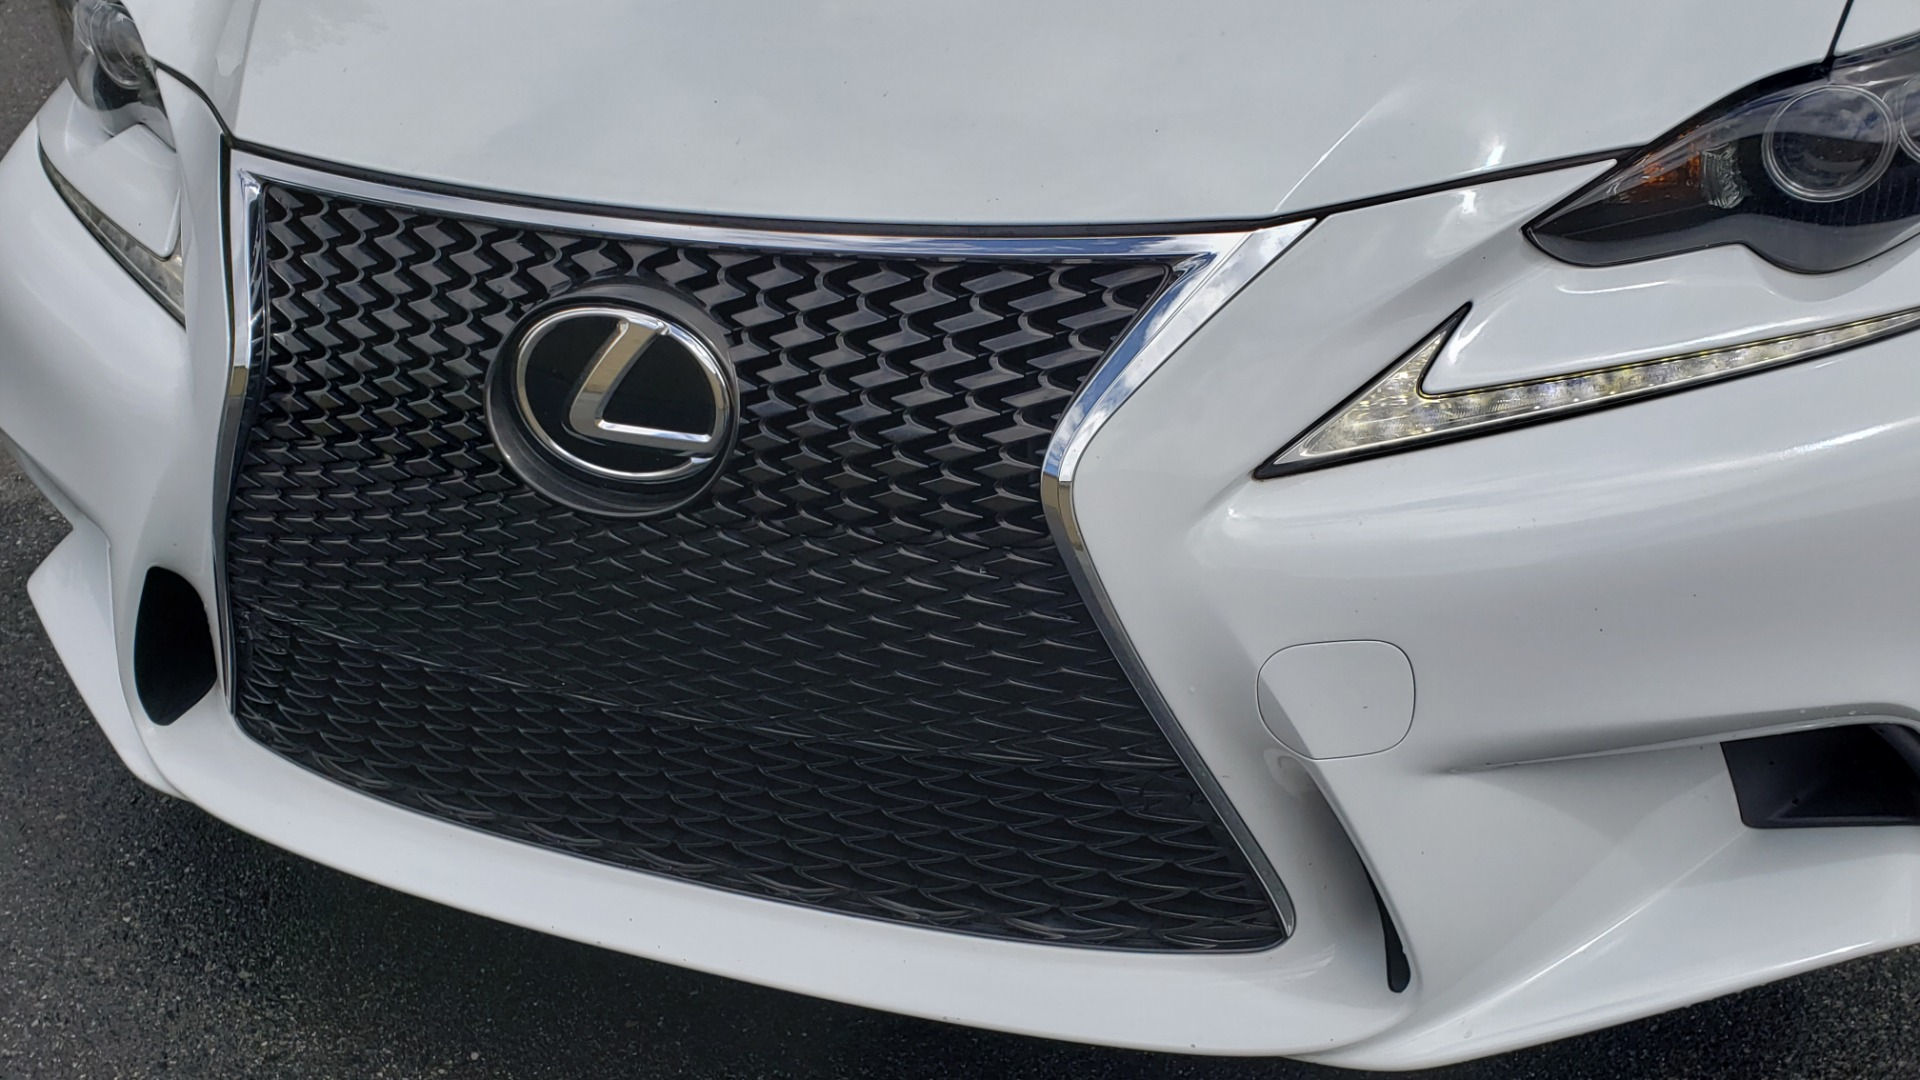 Used 2014 Lexus IS 350 F-SPORT / NAV / SUNROOF / REARVIEW / BSM / MARK LEV SND for sale Sold at Formula Imports in Charlotte NC 28227 21